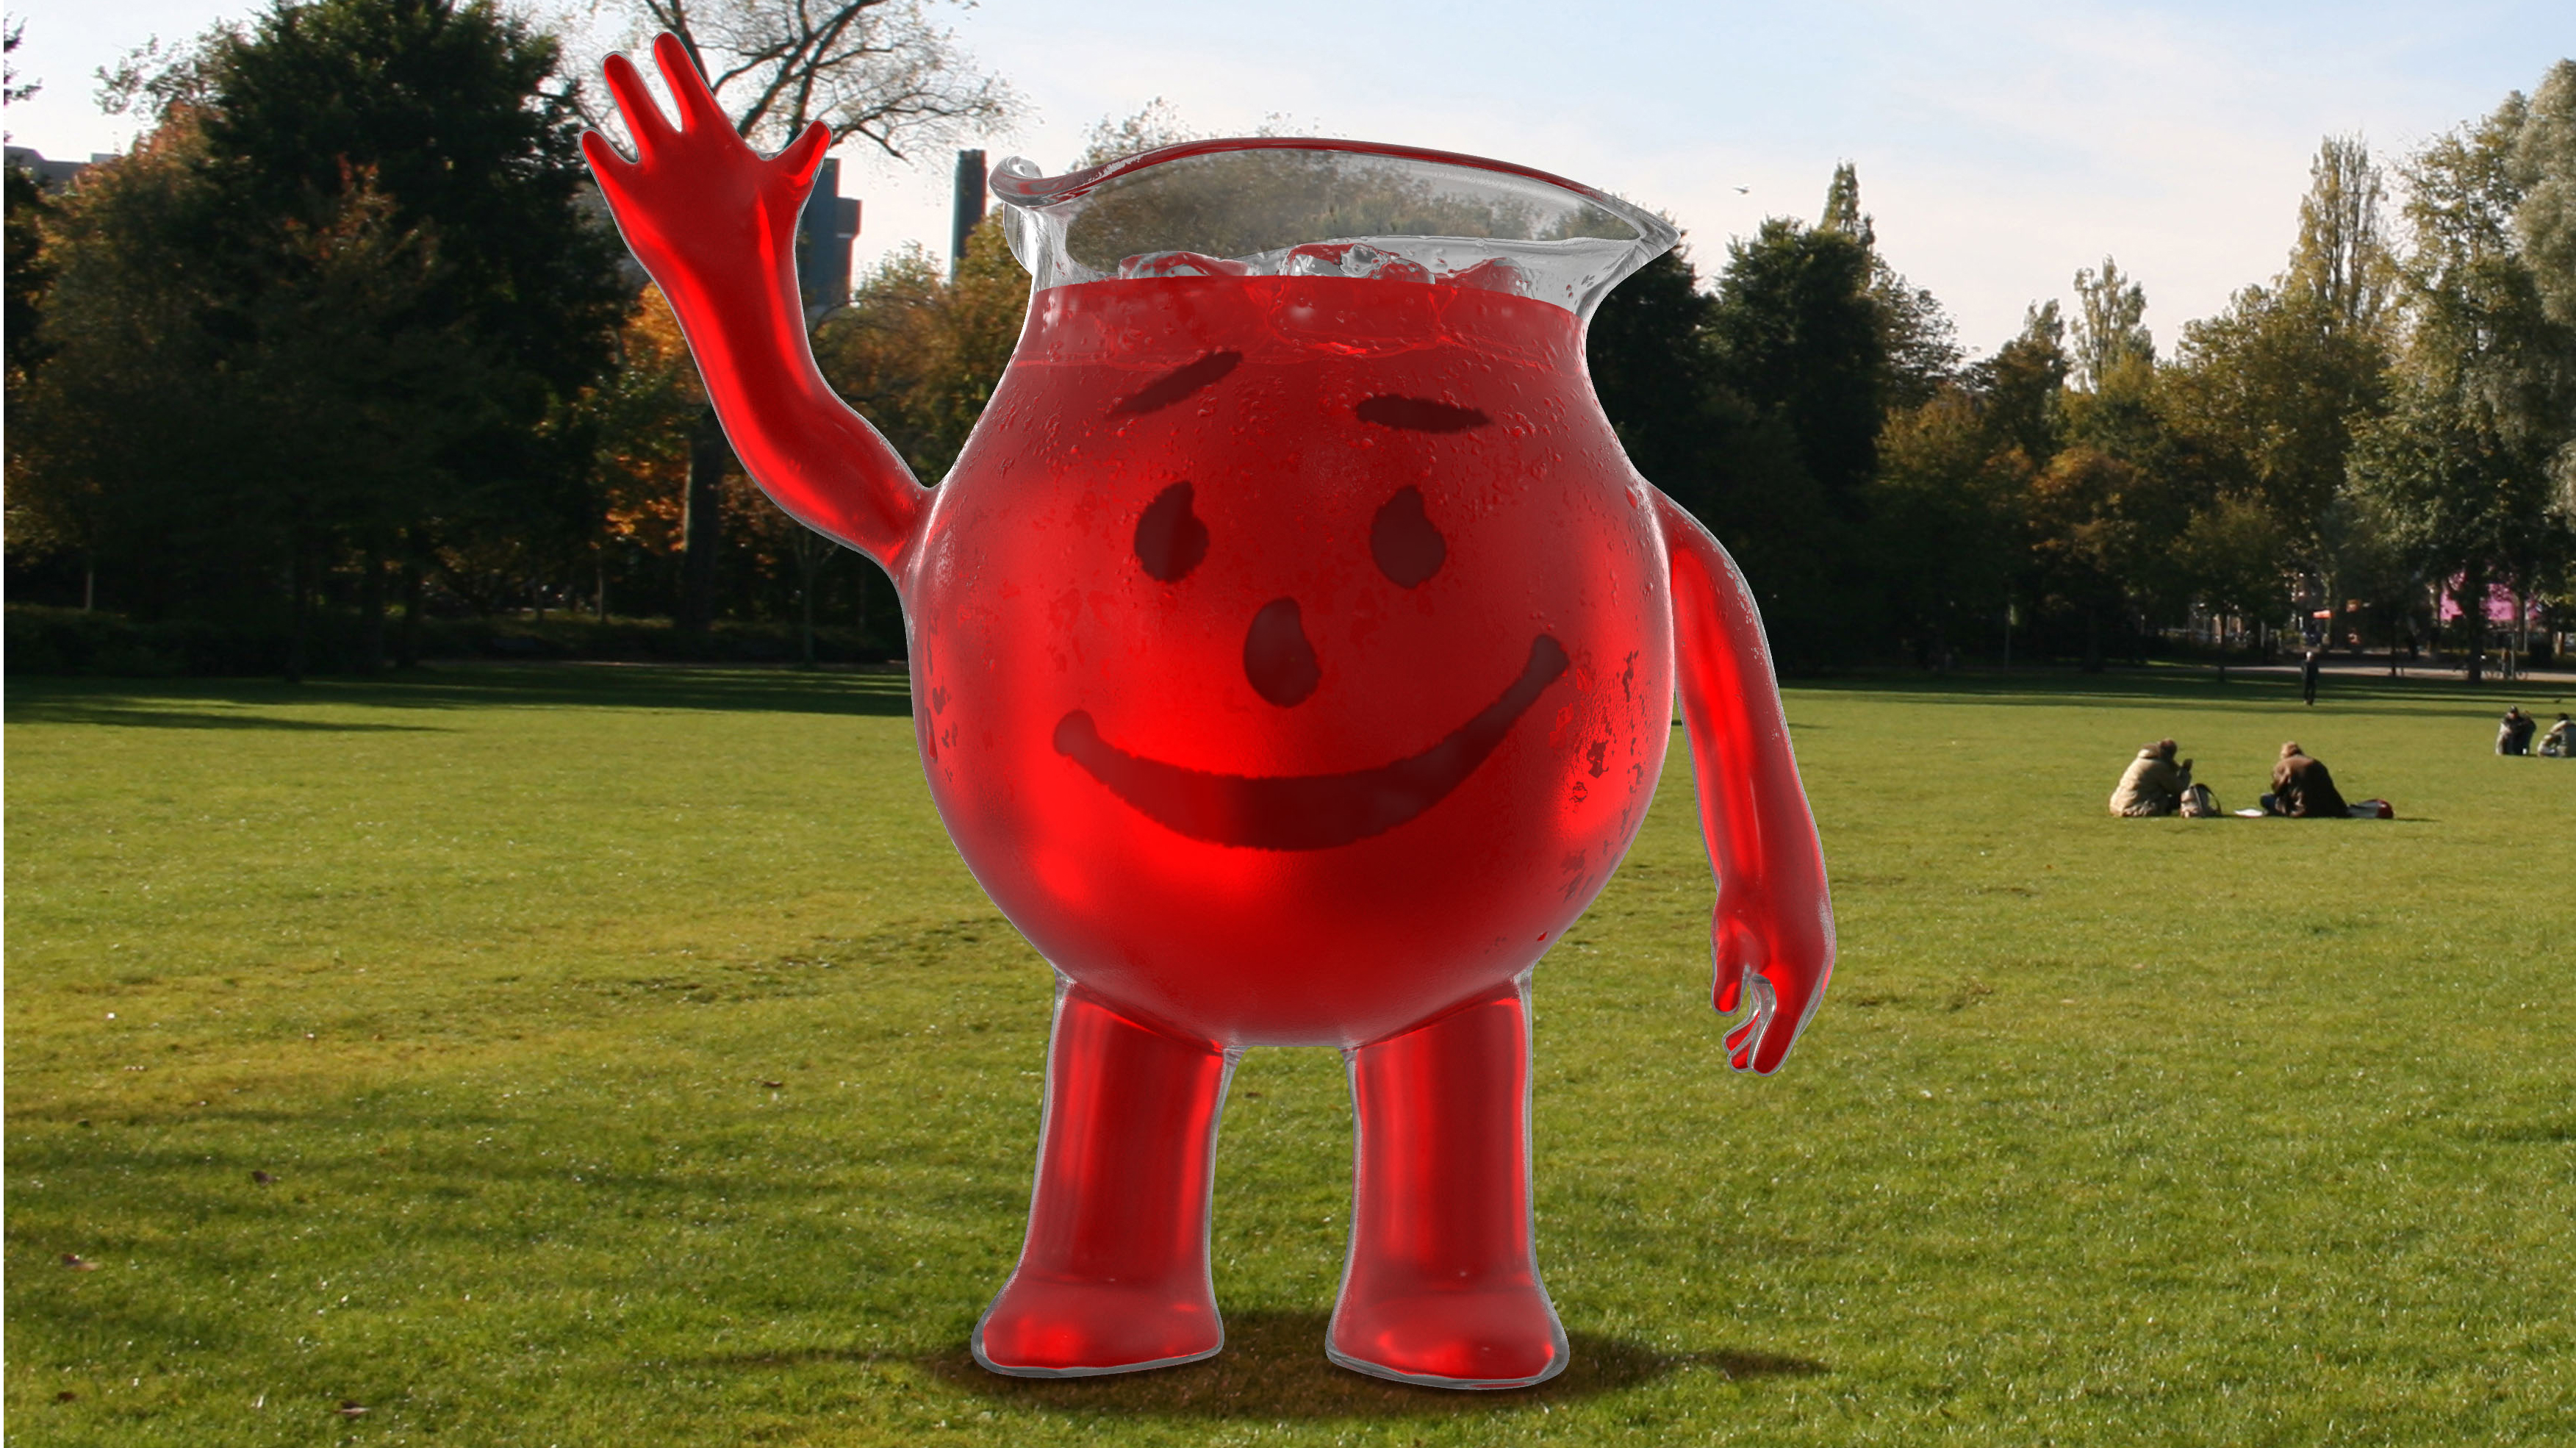 The new Kool-Aid standing in a field looking awkward.